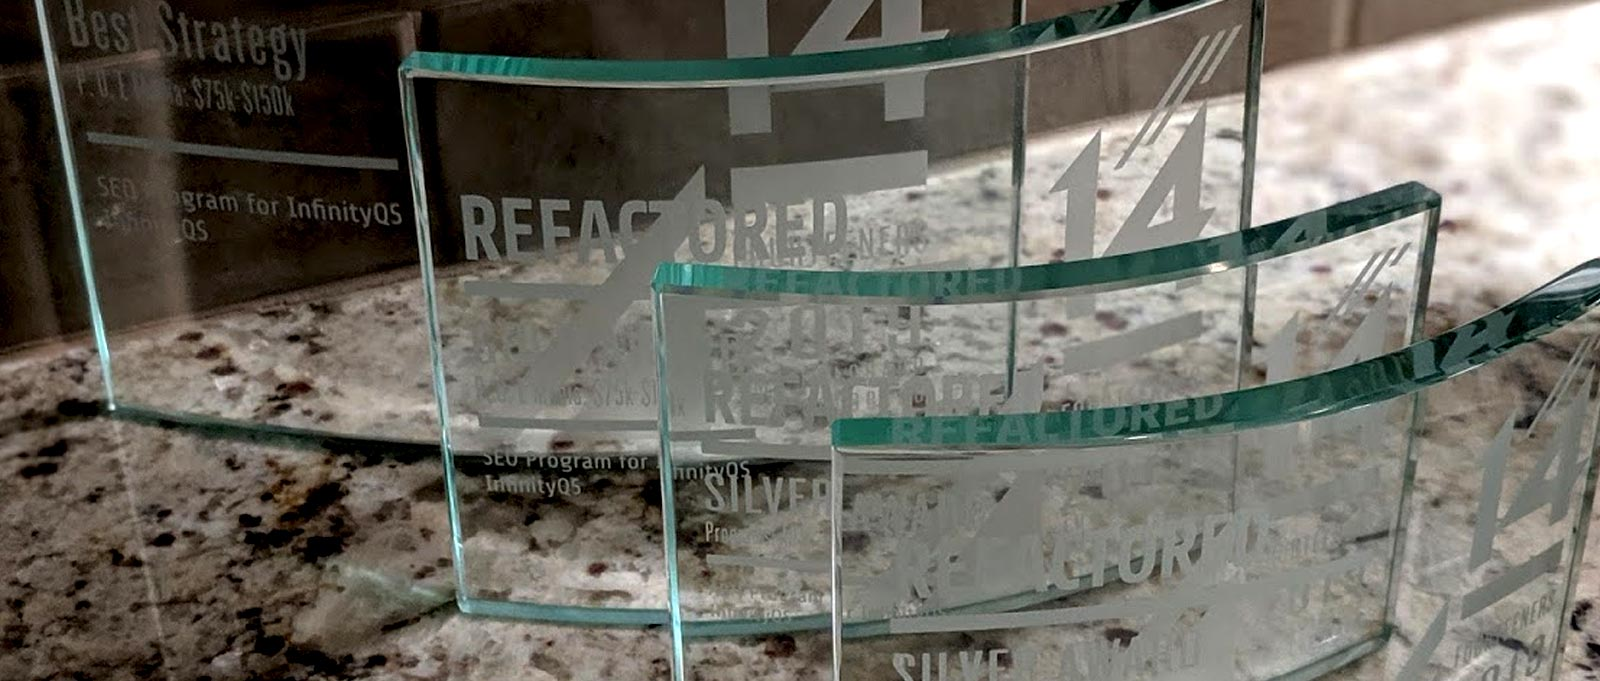 Reaching the Summit: Refactored Takes Home 4 Fourteener Awards